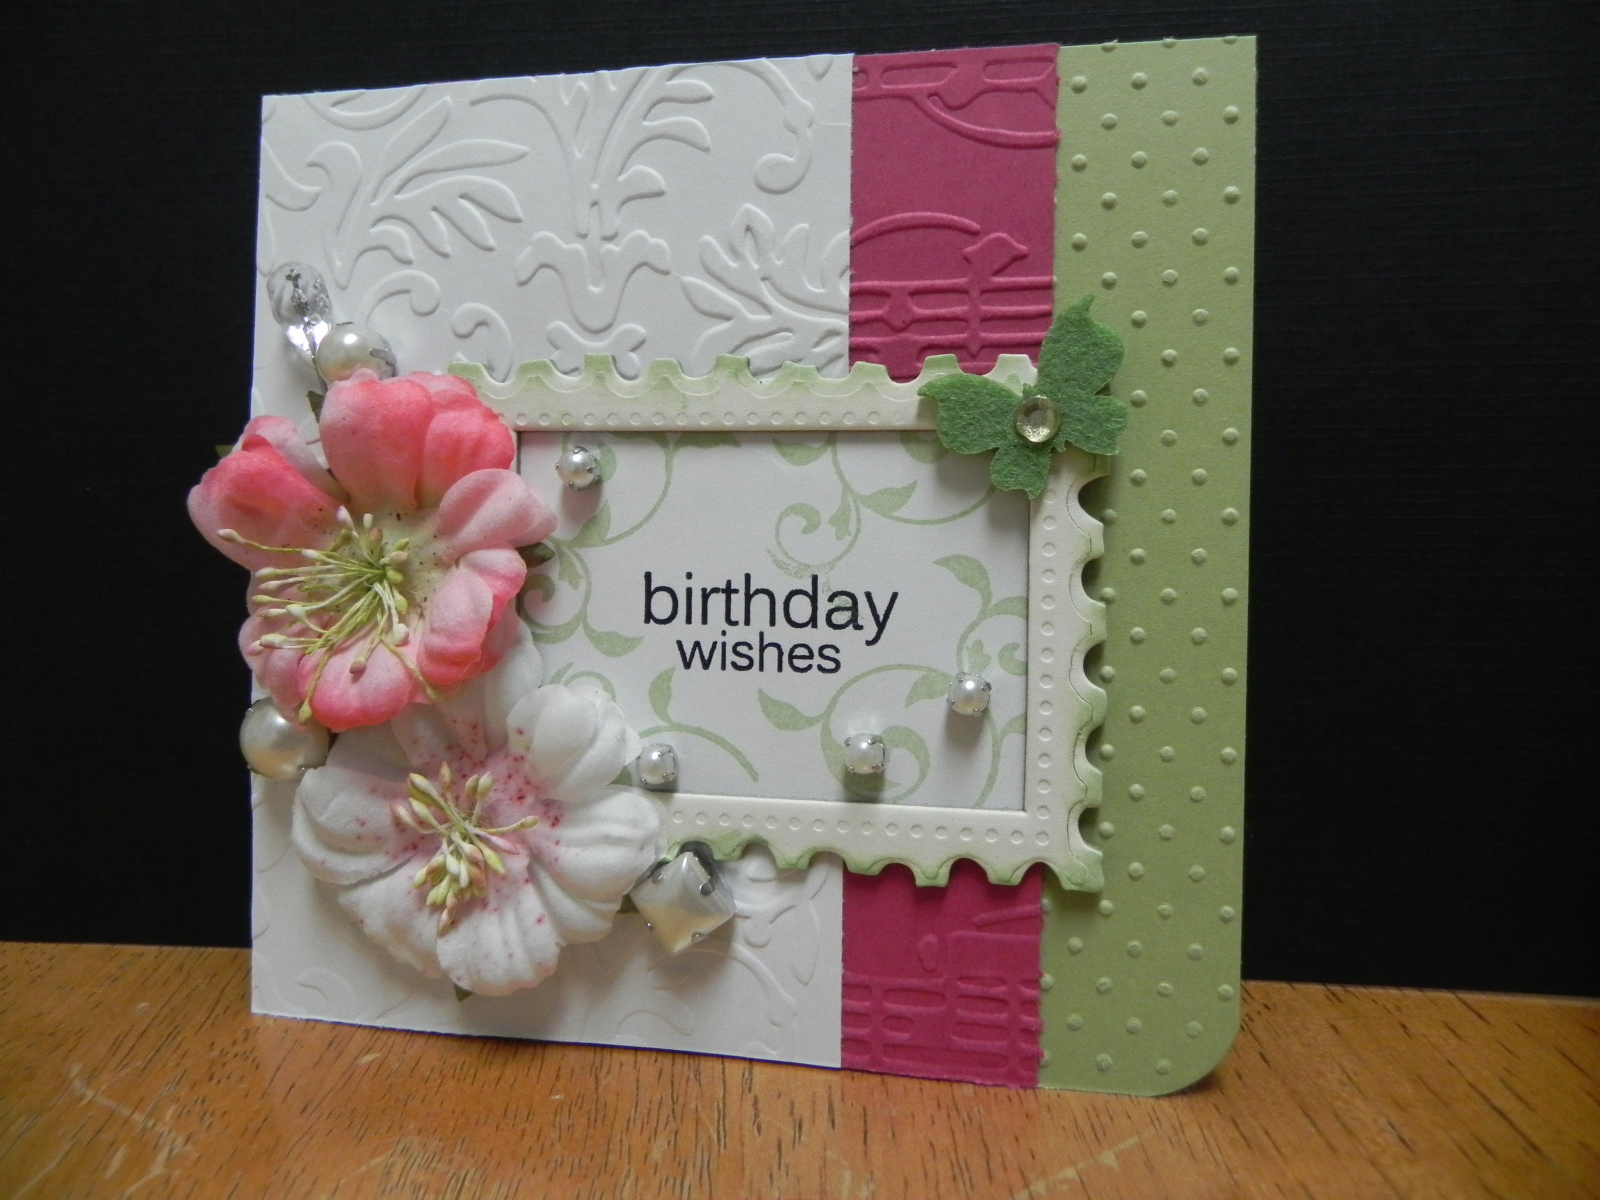 My passion for crafting birthday wishes flowers are prima pearls are jolees butterfly and cs from michaels pin is maya road frame is tatered angels corner punch mightylinksfo